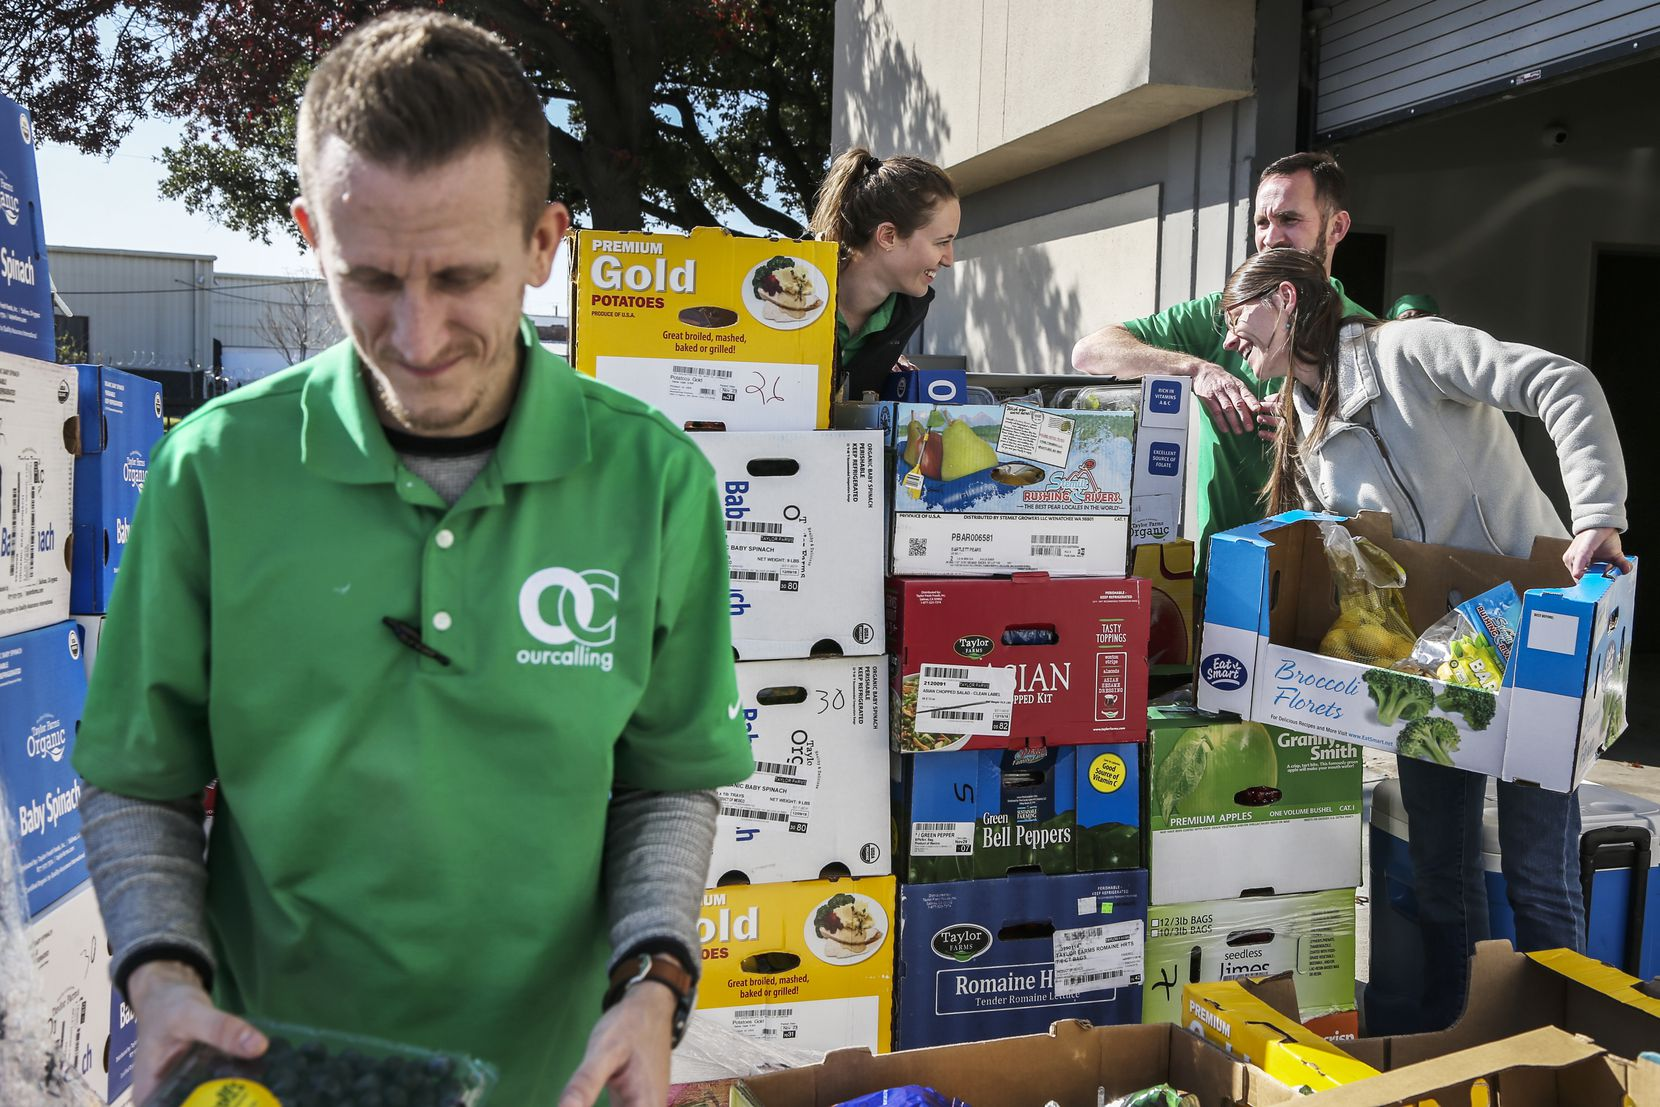 Joshua Brown, (left) operations technician, sorts through donated produce with other staff members at Our Calling in Dallas on Dec. 10, 2018.